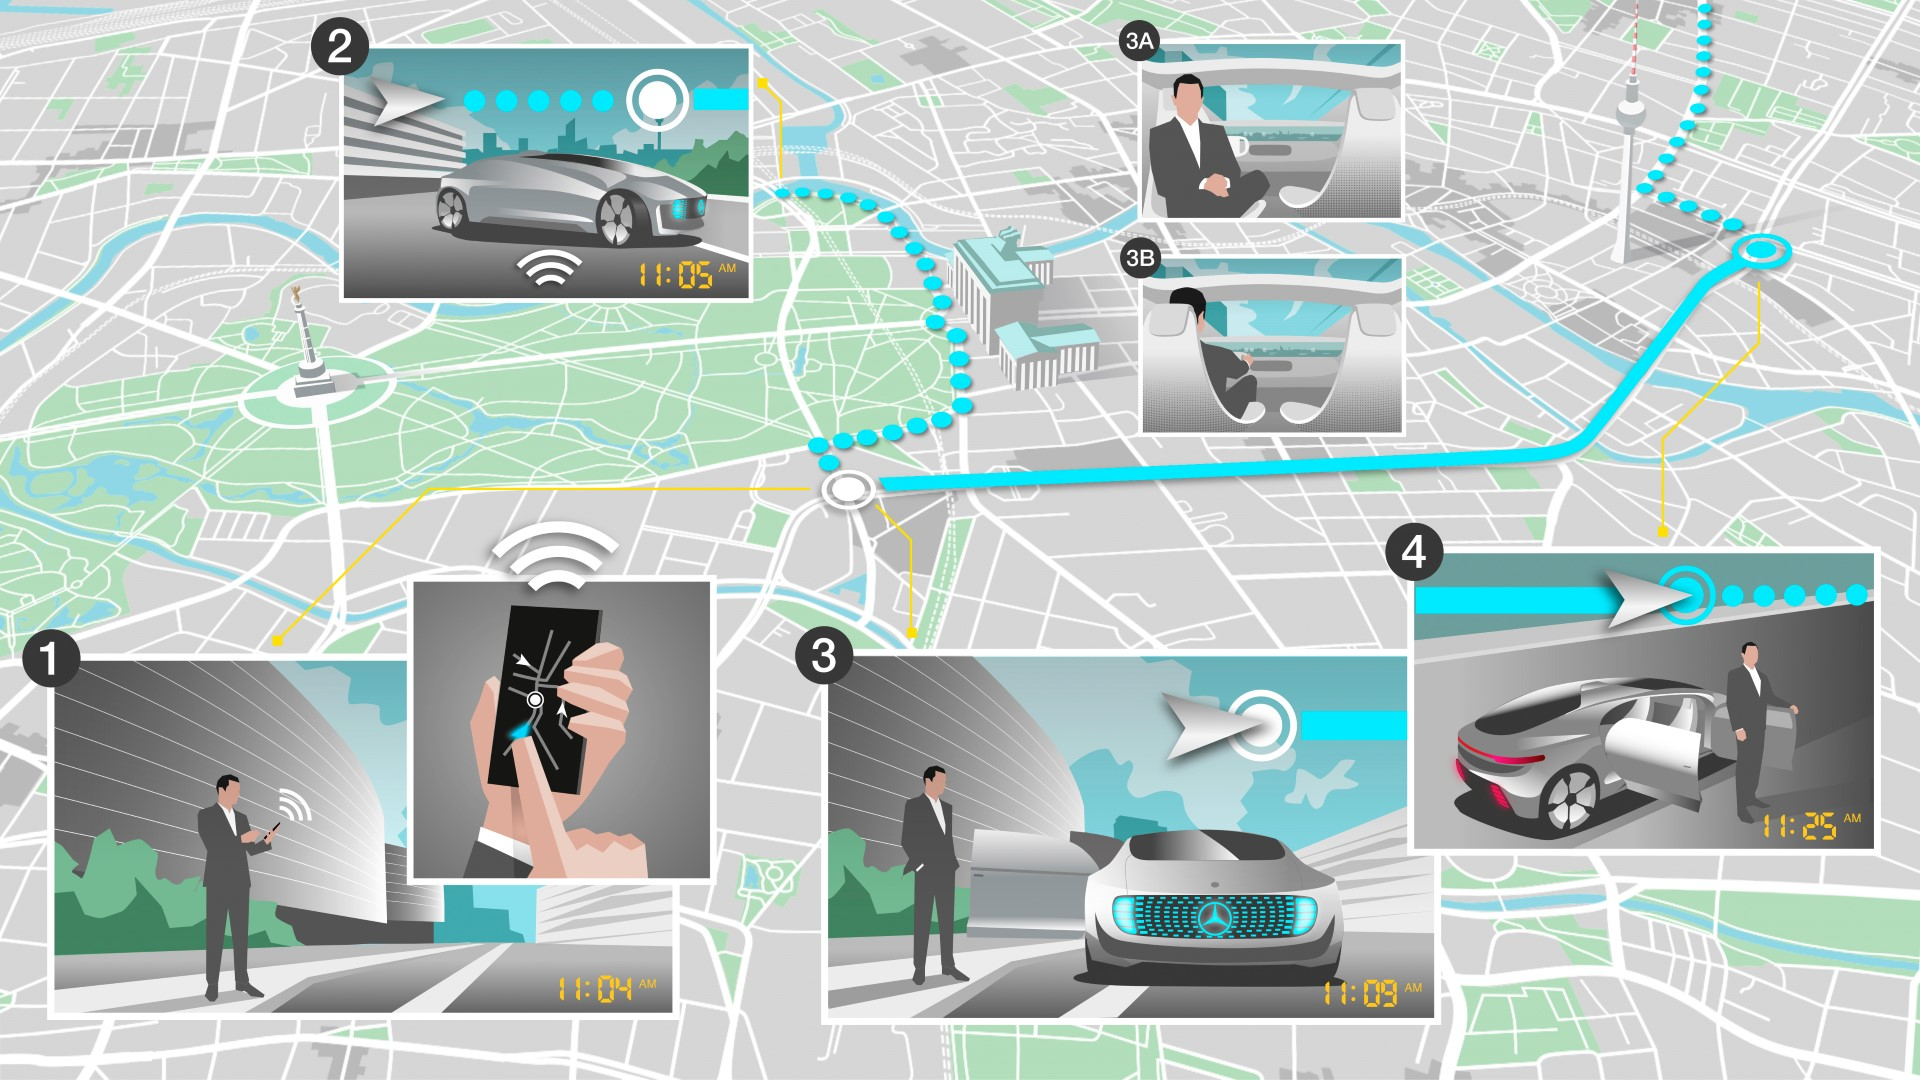 Autonomous vehicles from Daimler and Bosch